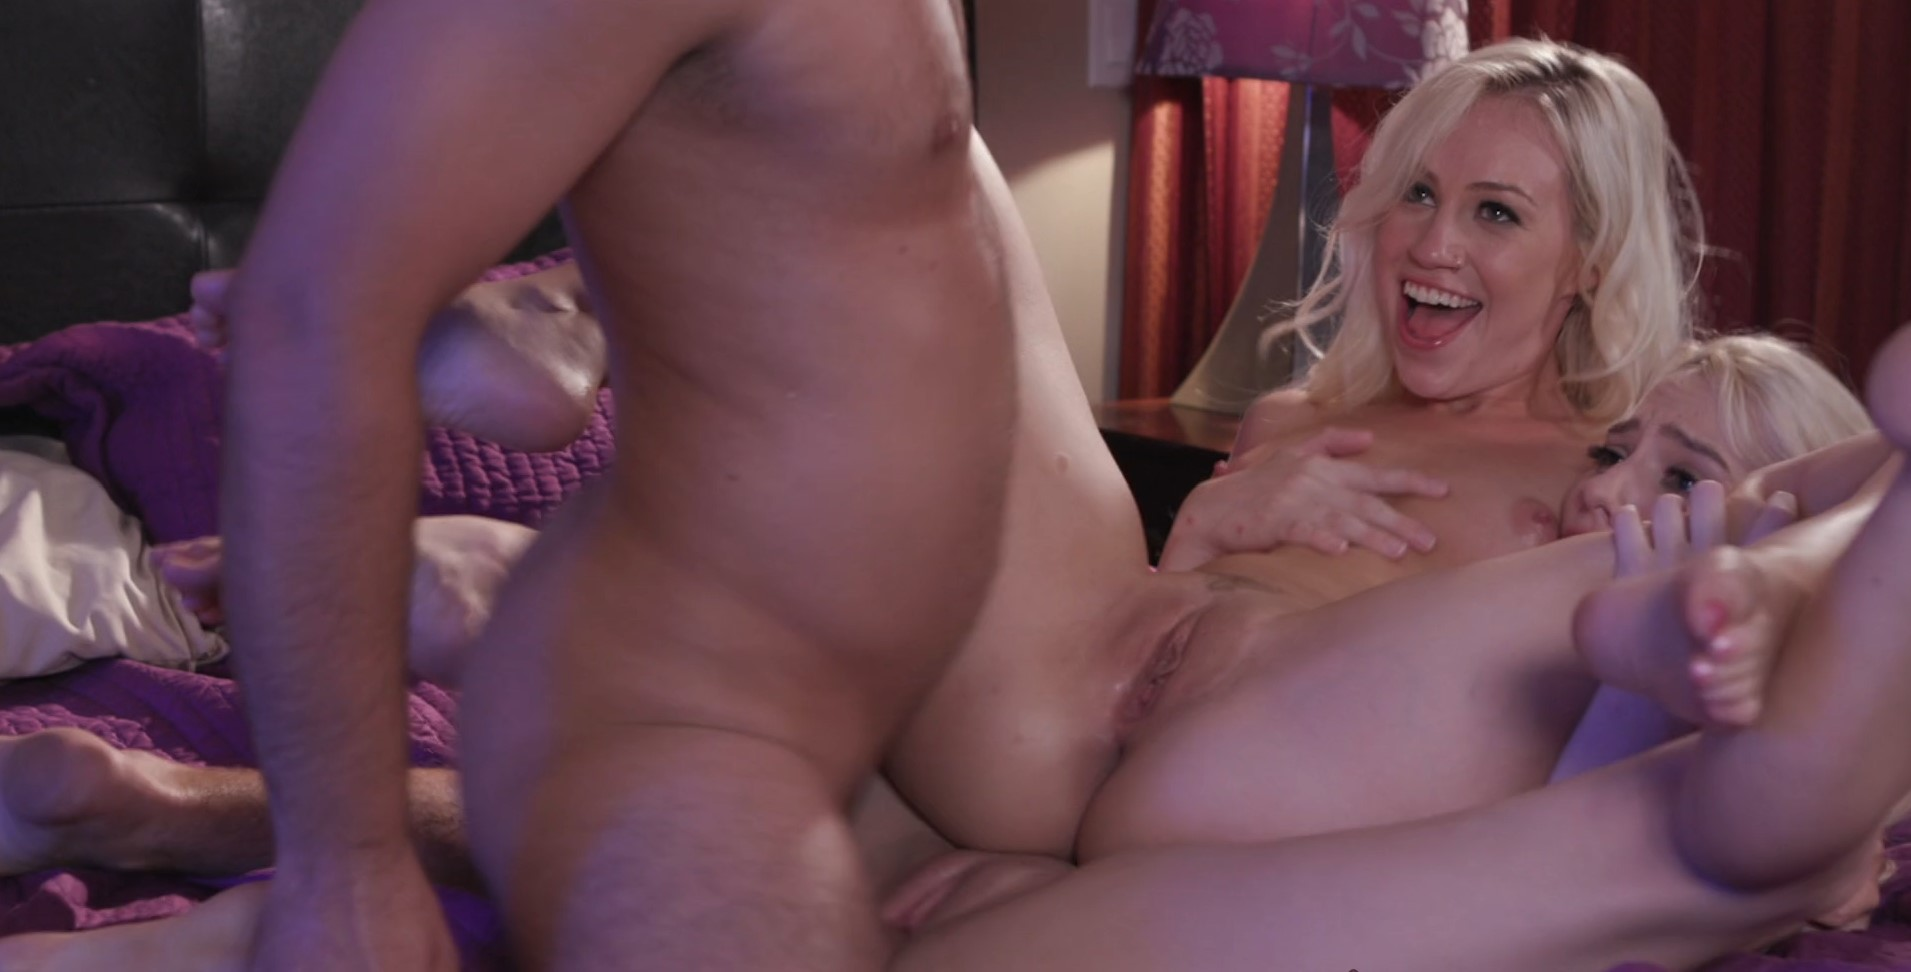 Kenna James, Lyra Law - Sexy blonde babes tag team a hot guy